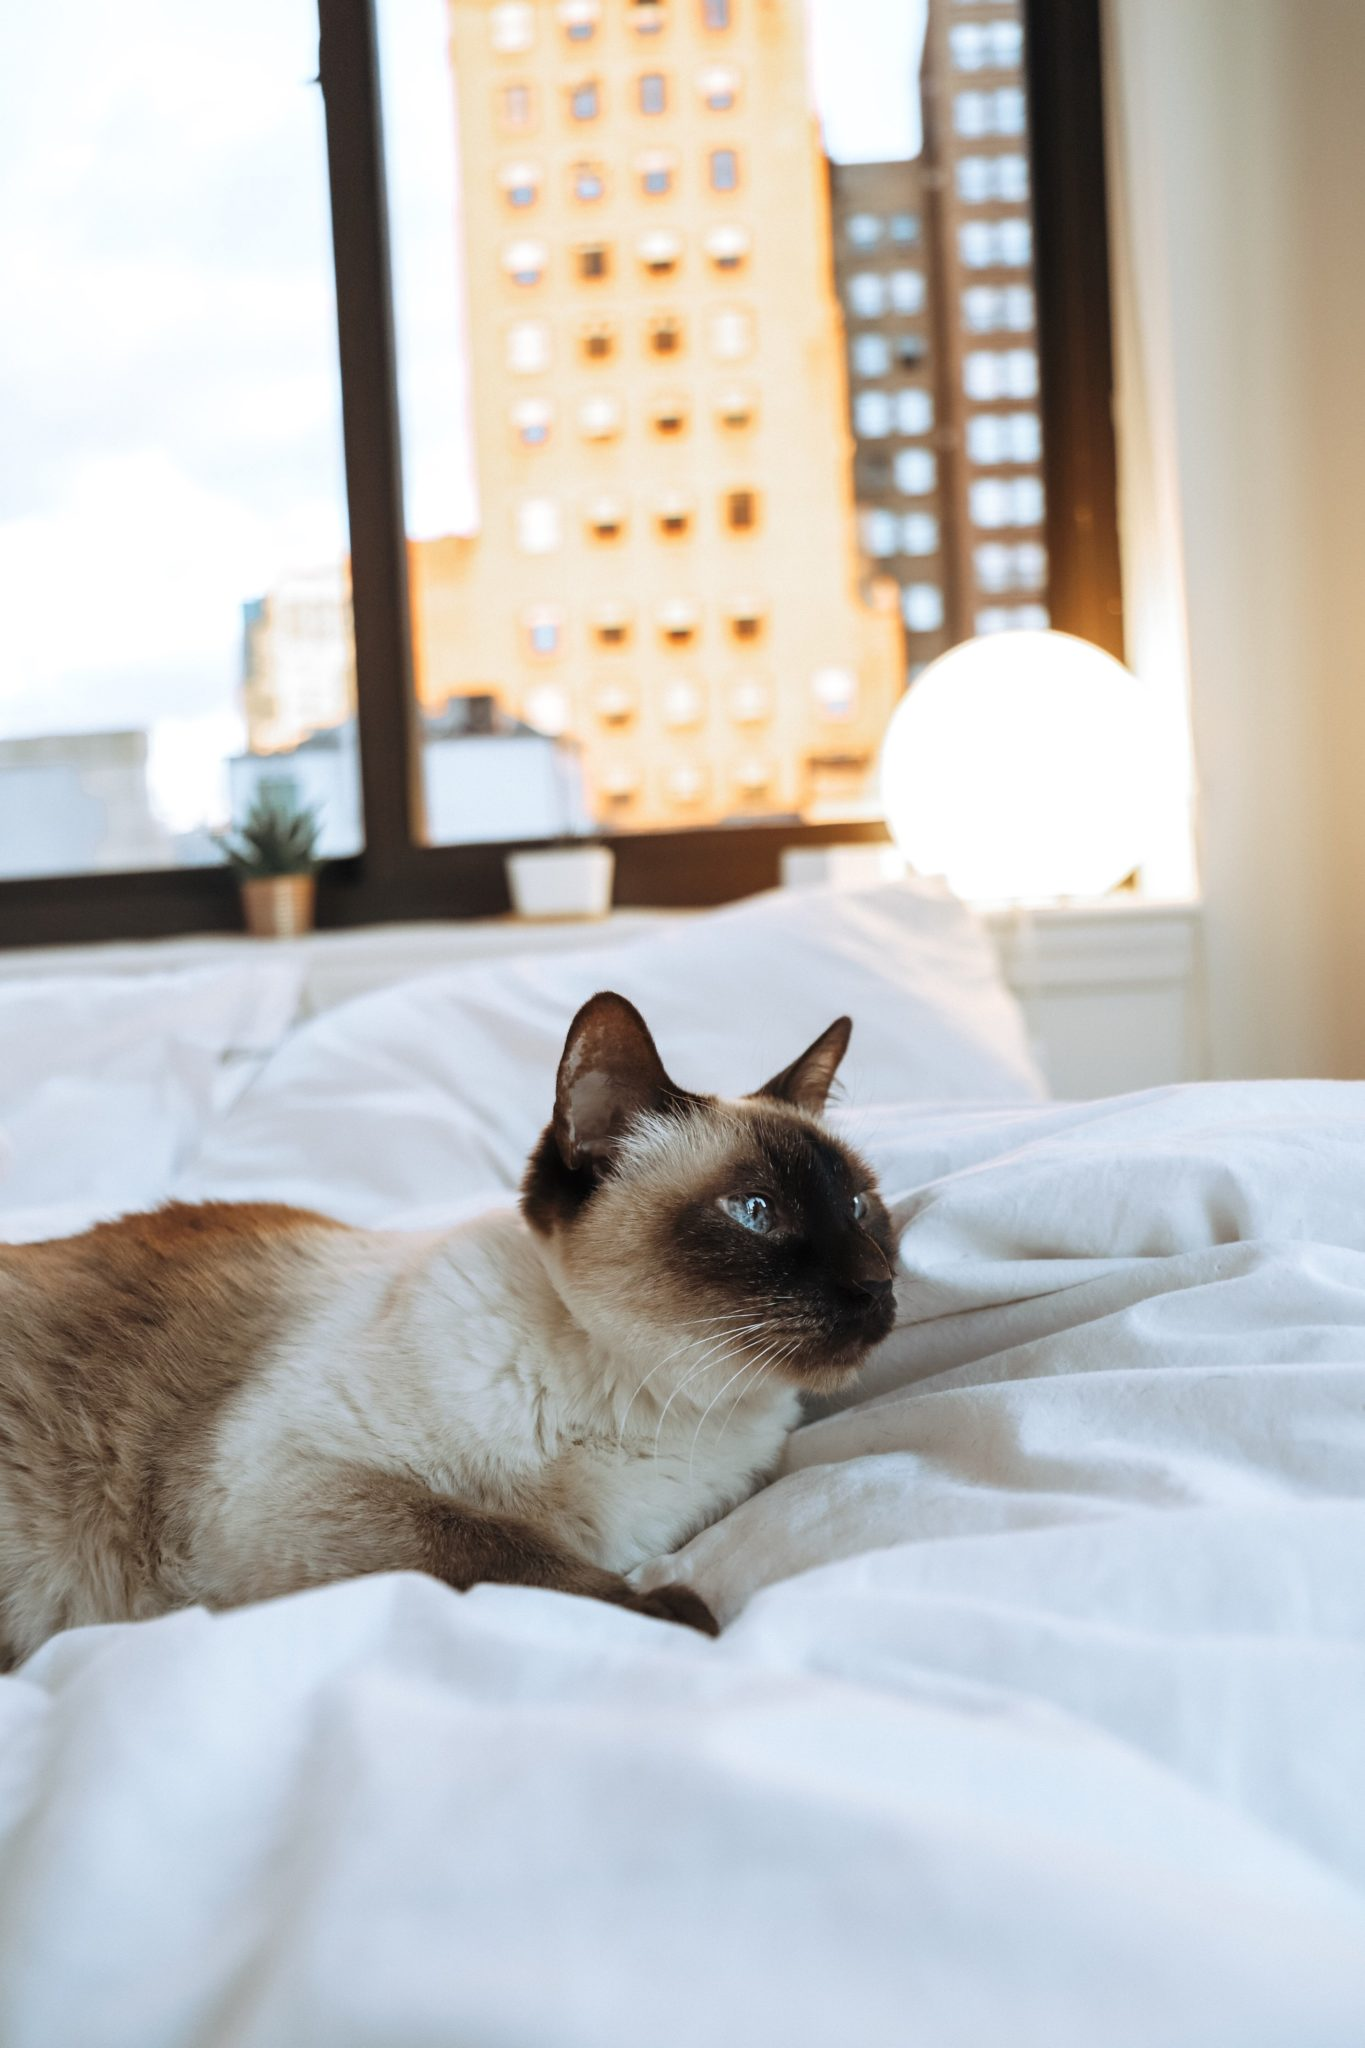 Cat napping in a bed